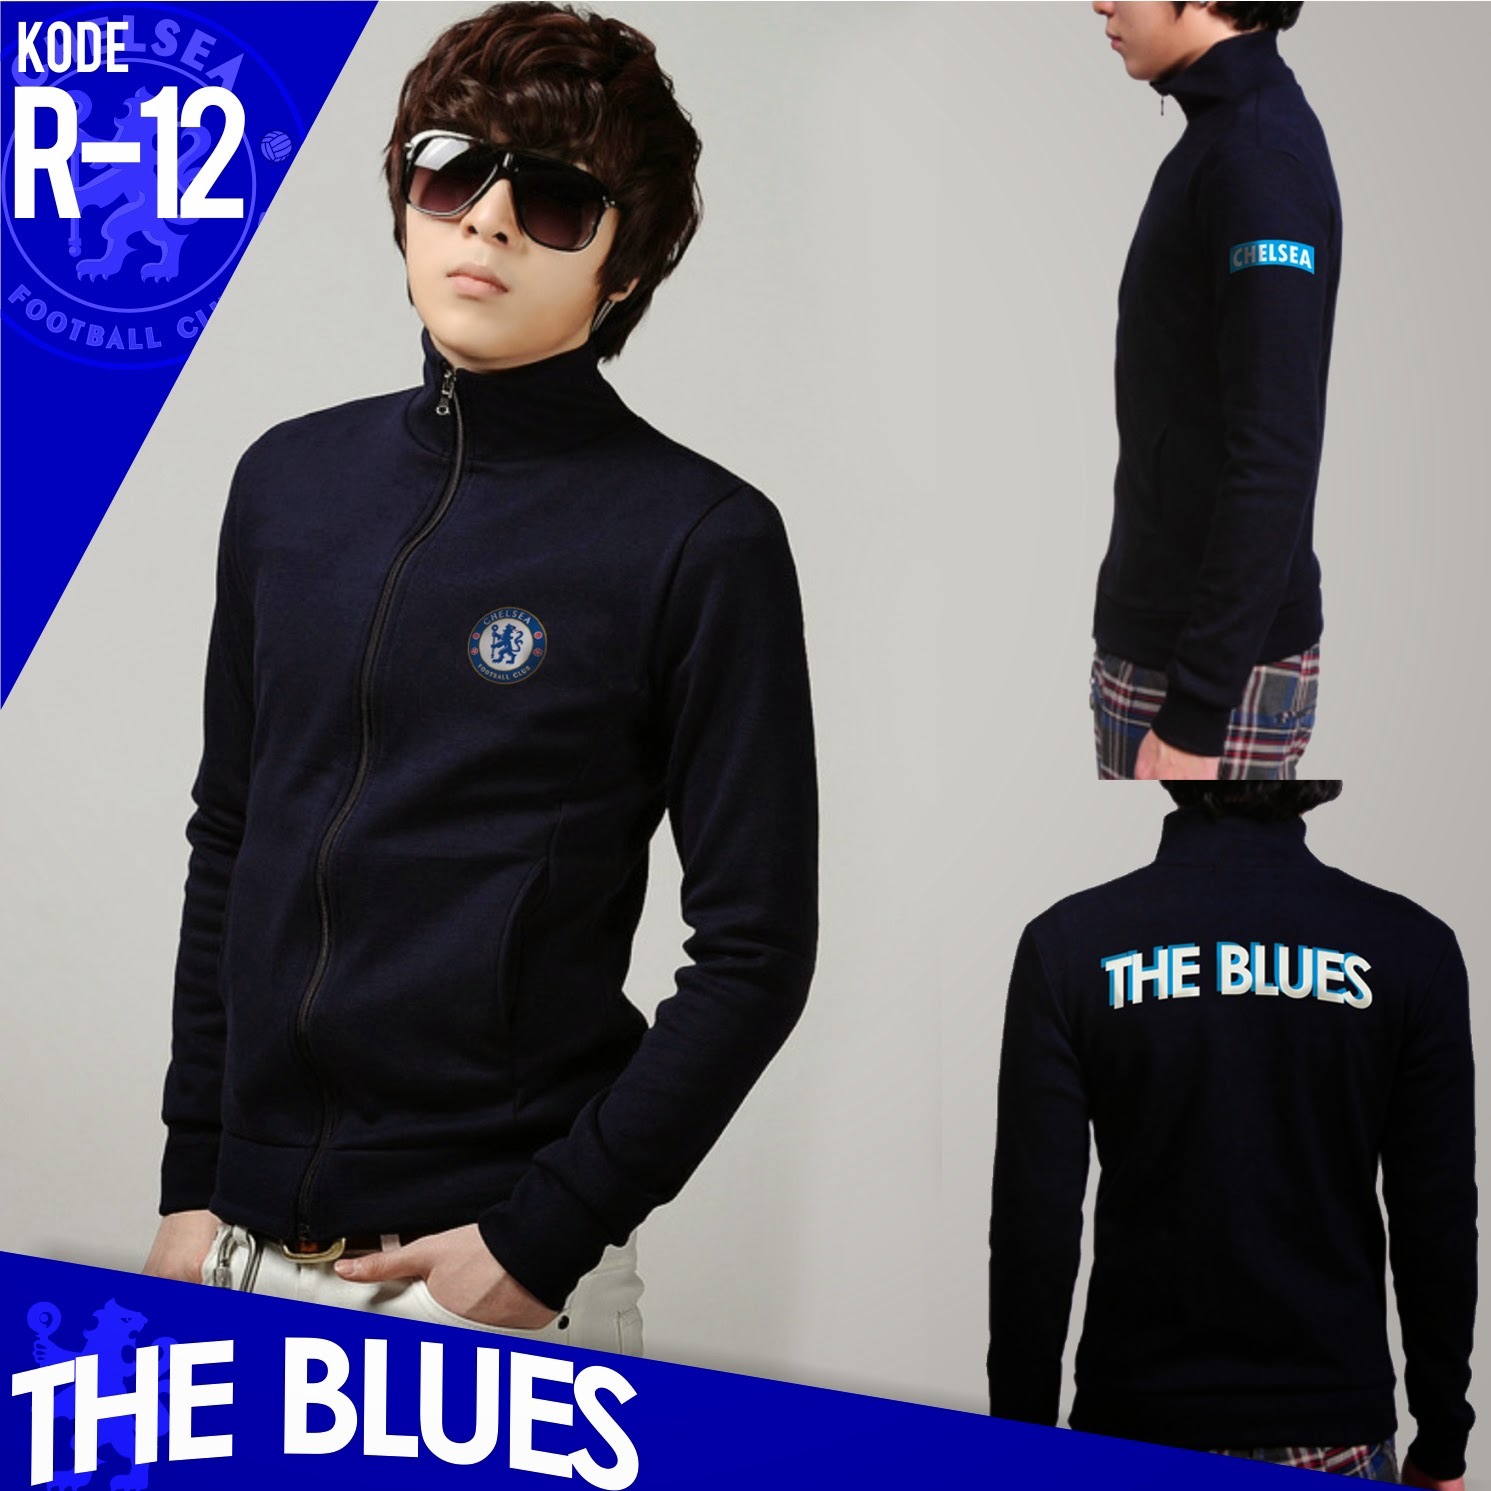 http://www.republikbola.org/produk/soccer-club-jacket-chelsea/